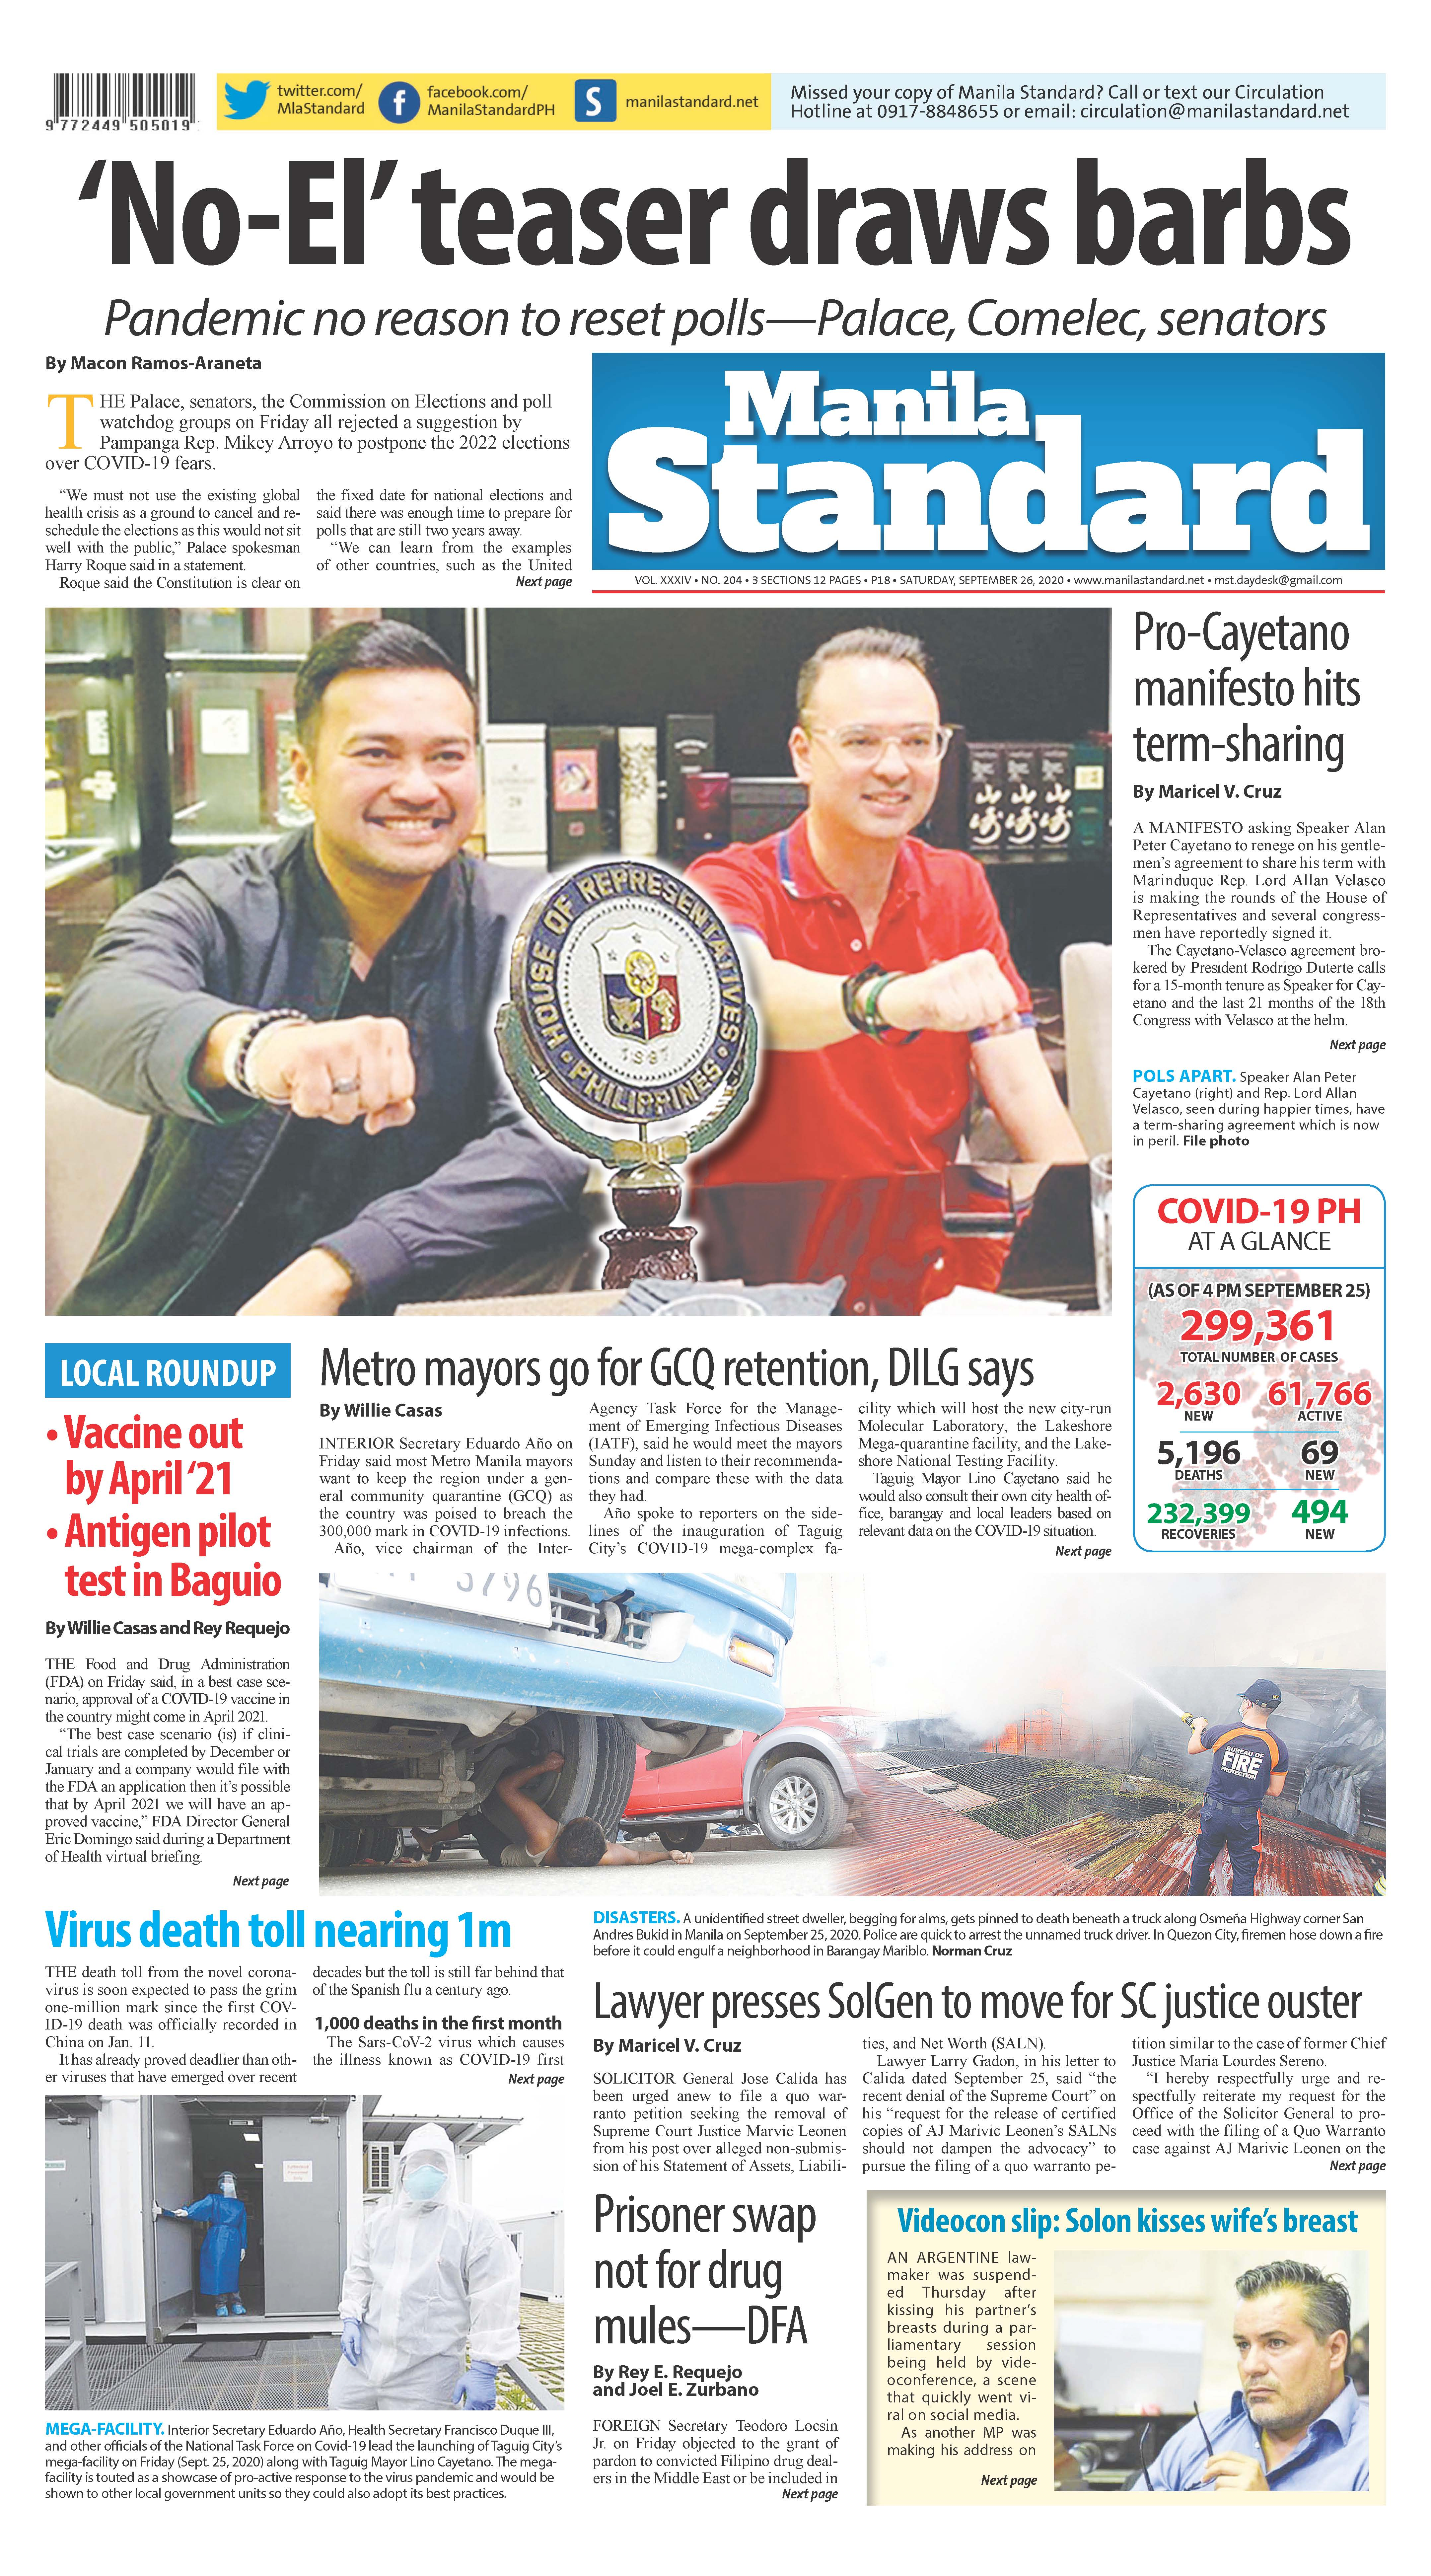 Saturday Print Edition (9/26/2020)